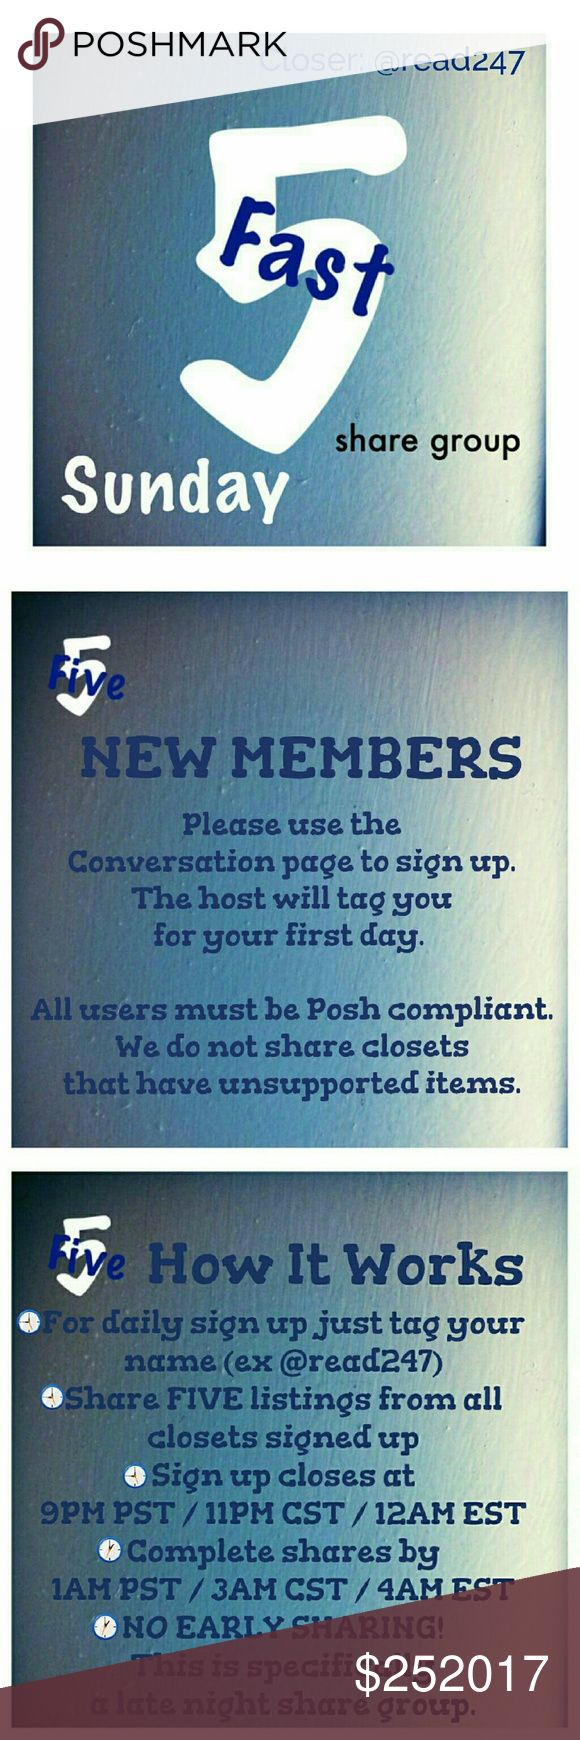 ⏳Sunday, 2/5 - Fast 5 Share Group SignUp Sheet⌛ 🌃New group members please sign up on the Conversation page. 🌃POSH COMPLIANT CLOSETS ONLY! 🌃If you have any ?s please use the conversation page. 🌃Share FIVE available listings. 🌃Sign up is open until 9PM PST /11PM CST /12AM EST 🌃You have until 1AM PST /3AM CST /4AM EST to finish sharing. 🌃NO EARLY SHARING! This group was created specifically for sharing at night. 🌃THIS IS THE DAILY SIGN UP SHEET! 🌃PLEASE BE SURE TO LIKE THE CONVERSATION…